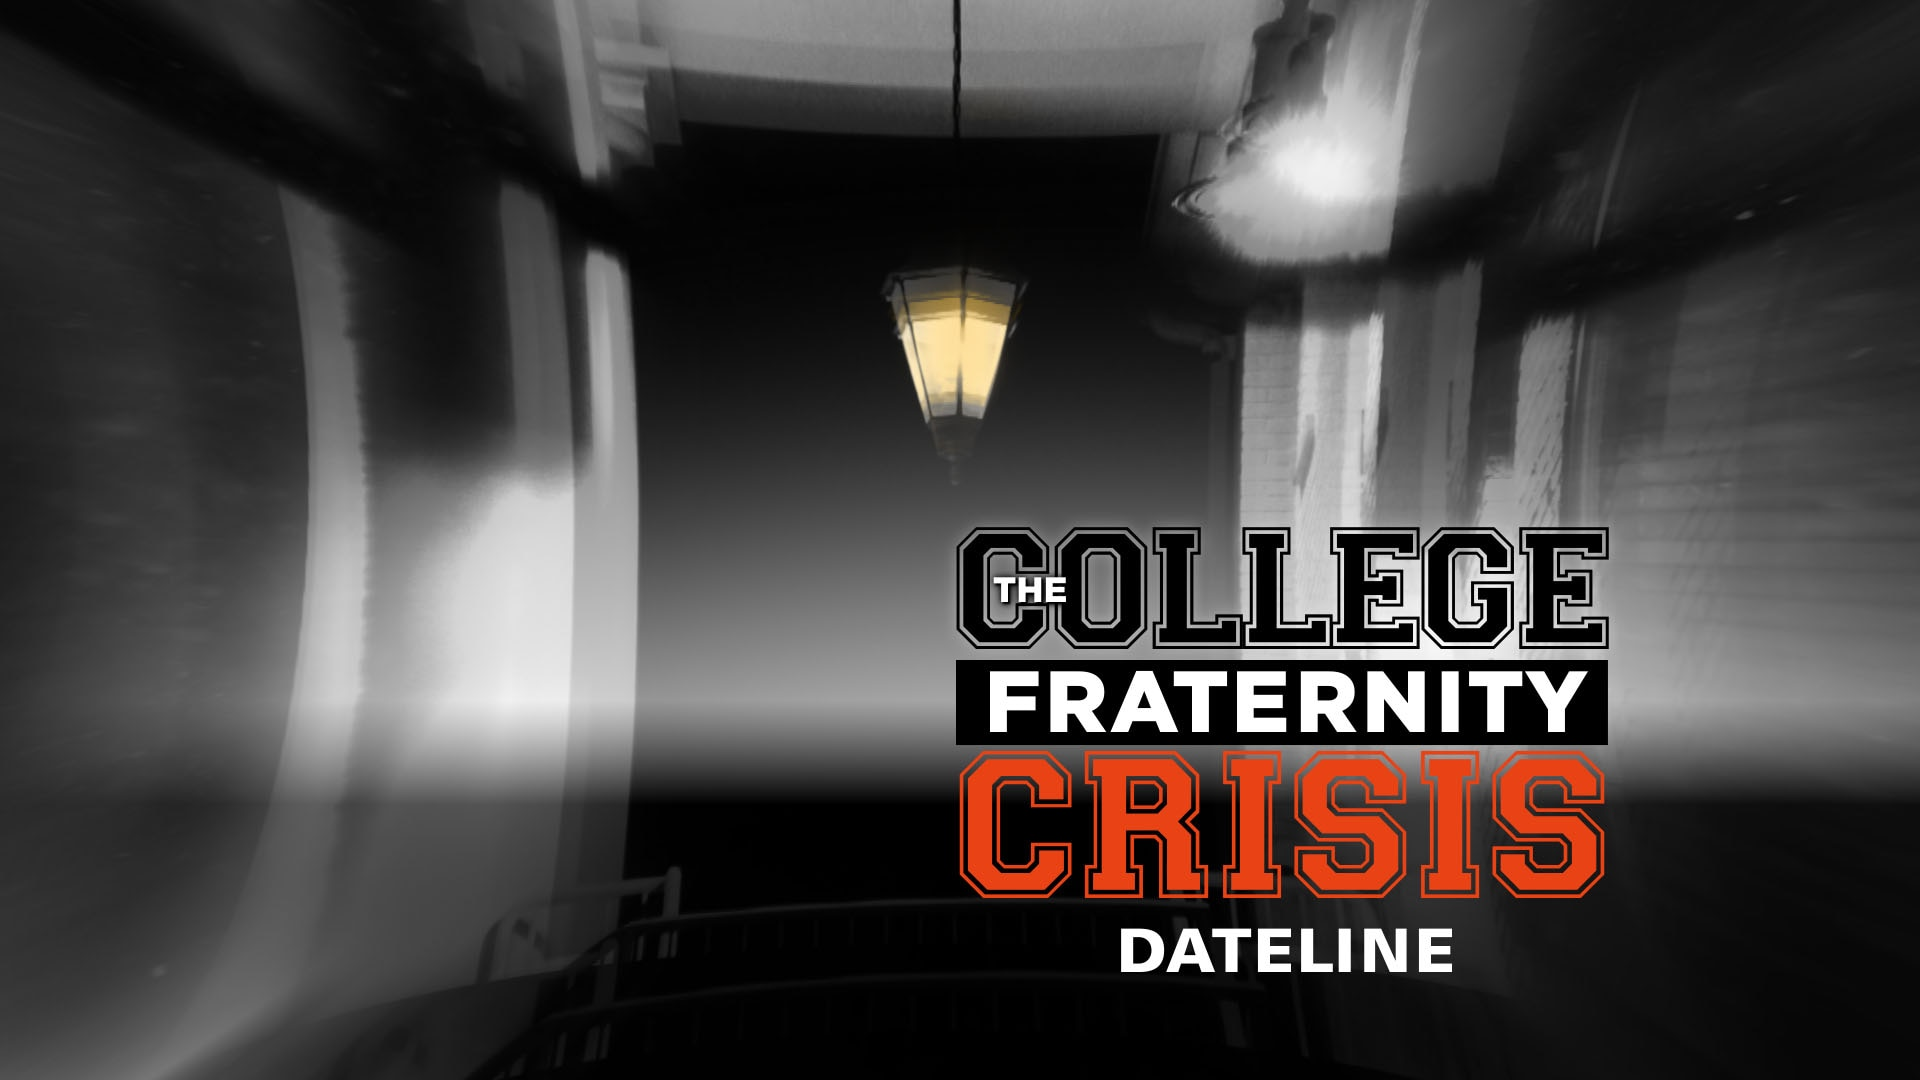 Watch Dateline Episode The College Fraternity Crisis